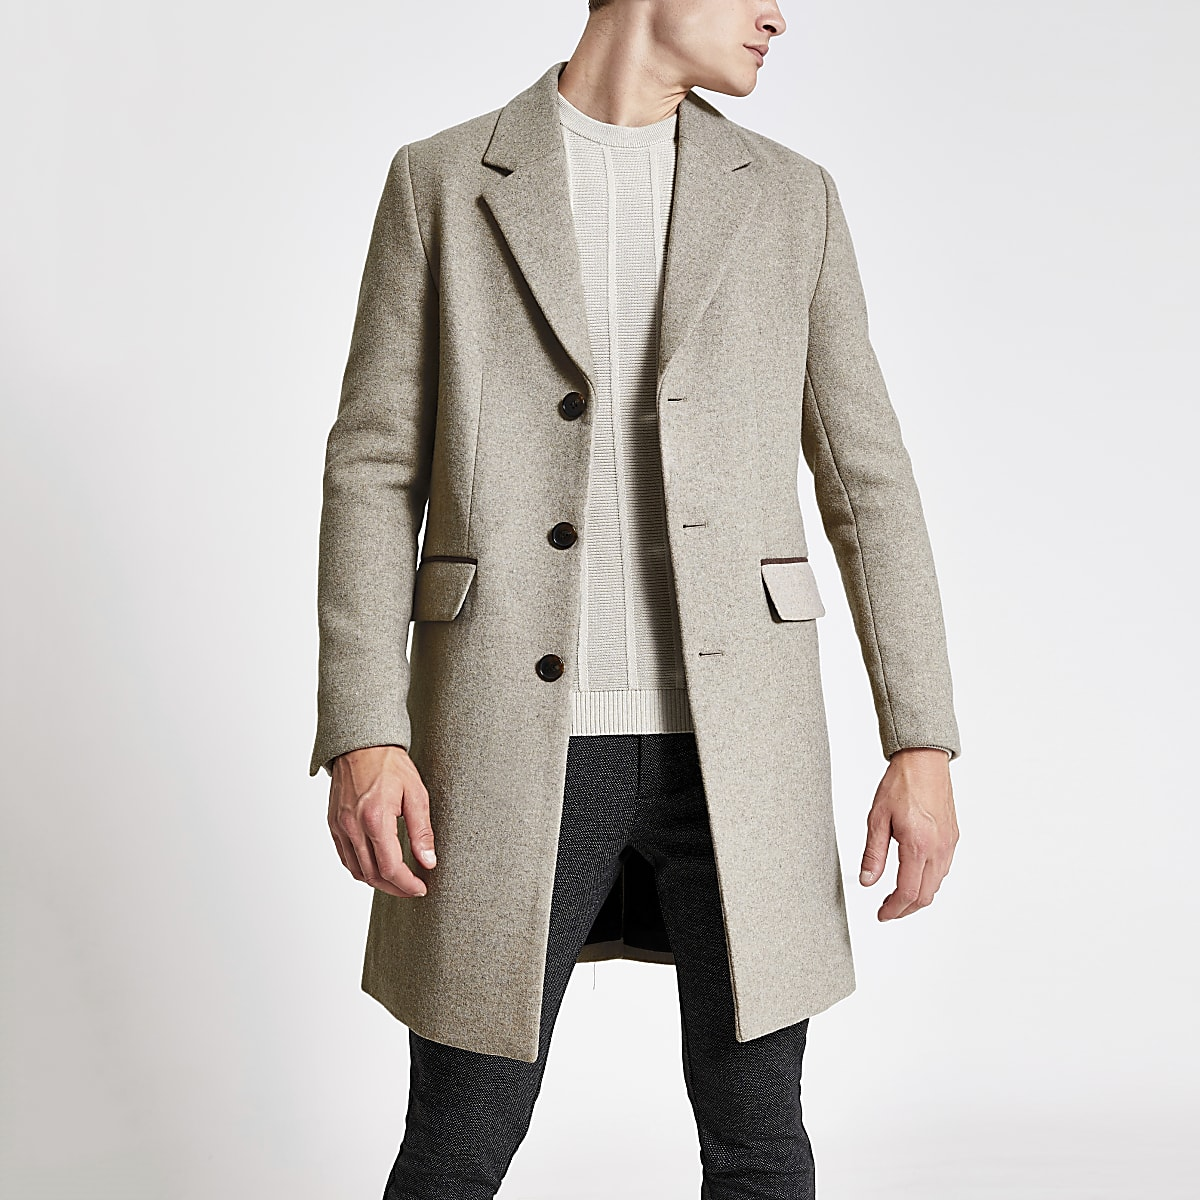 Light brown single breasted wool overcoat